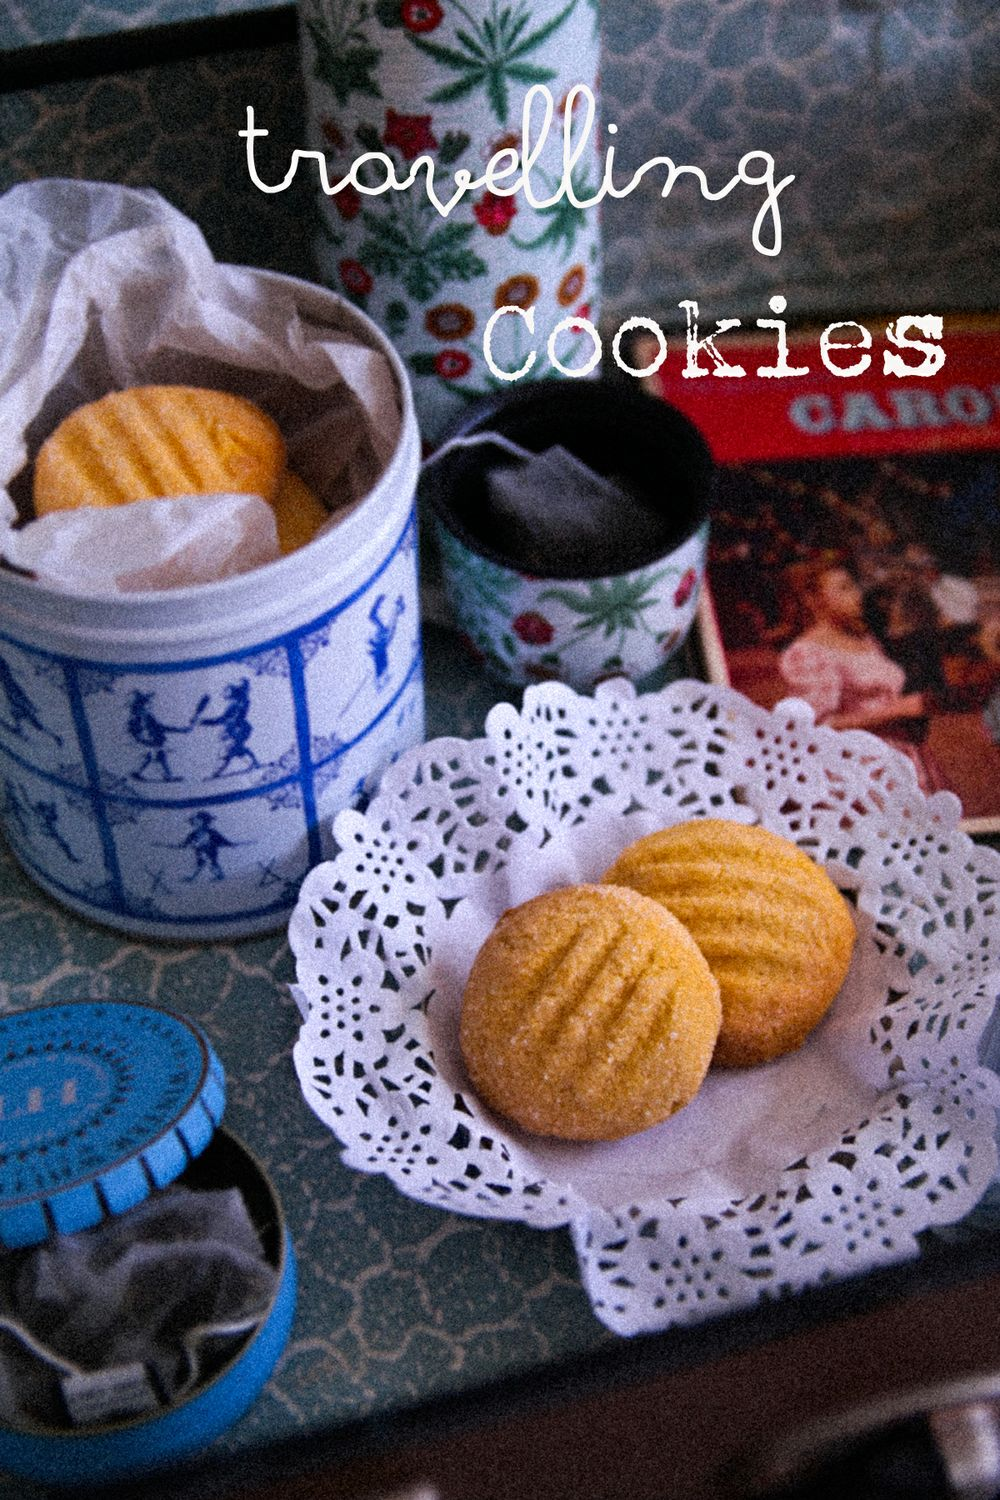 m-condensed-milk-cookies-1-